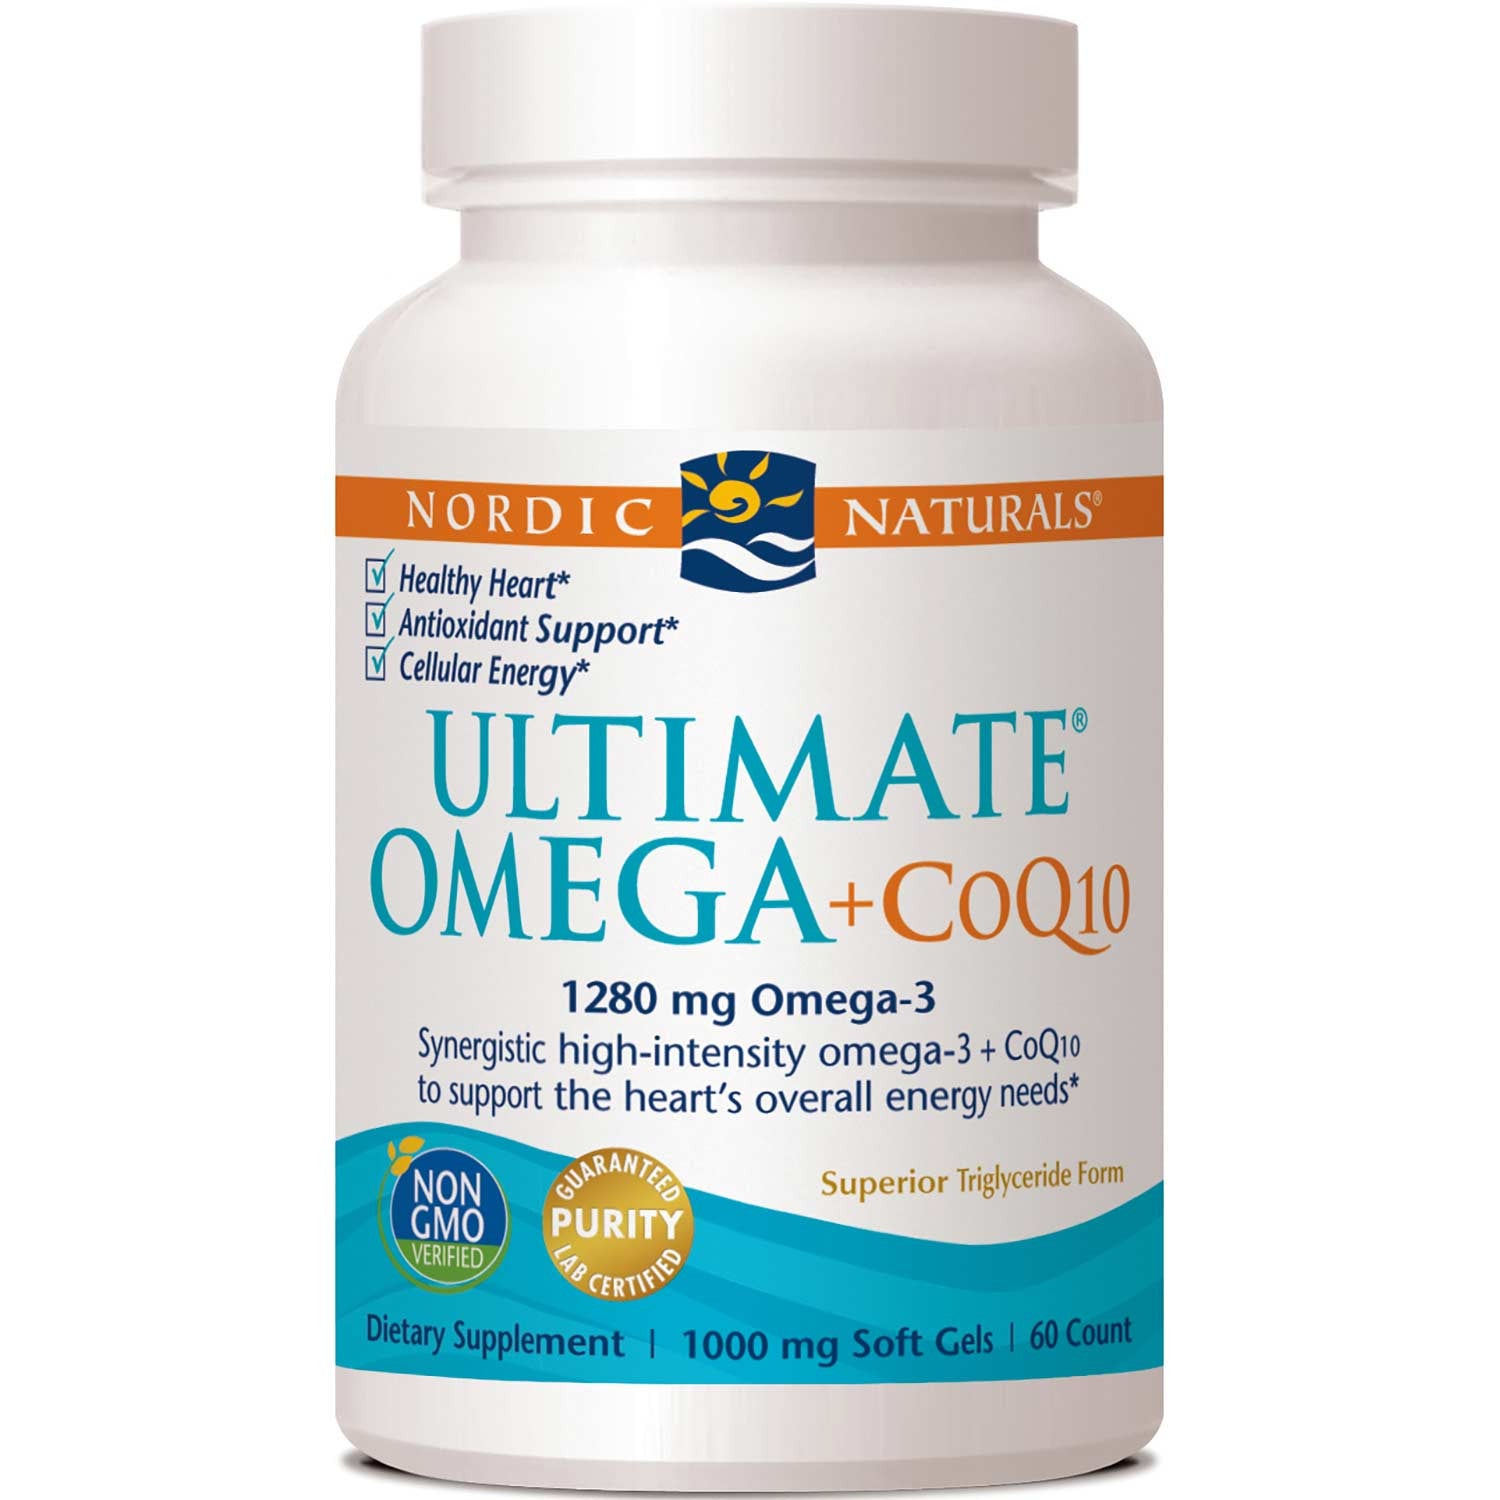 Nordic Naturals Ultimate Omega + CoQ10 1000 mg - Plain, 60 sgls.-NaturesWisdom